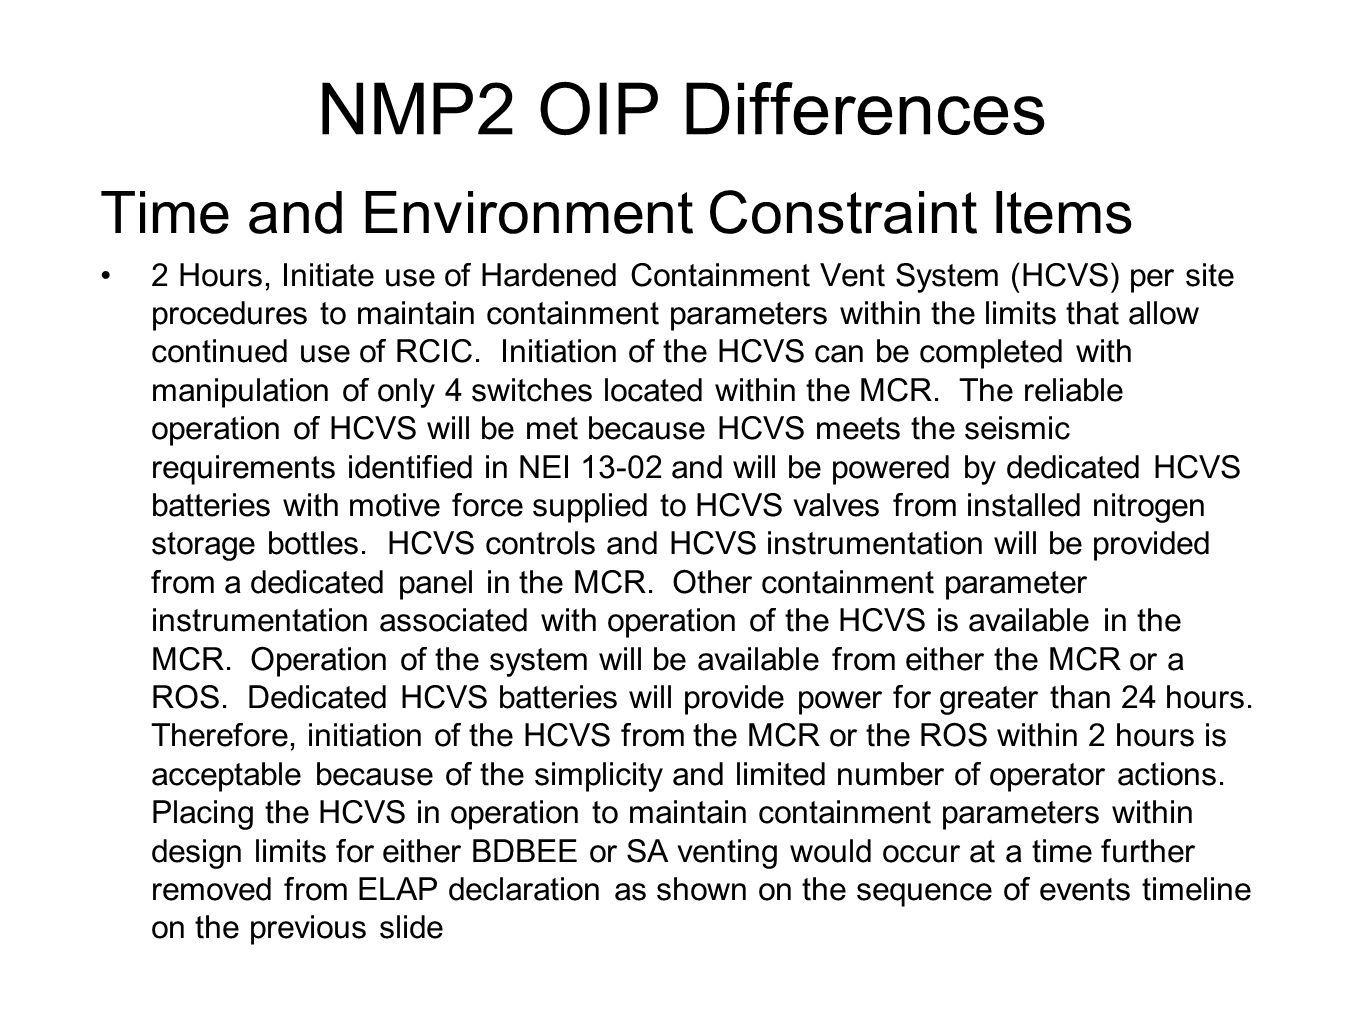 NMP2 OIP Differences Time and Environment Constraint Items 2 Hours, Initiate use of Hardened Containment Vent System (HCVS) per site procedures to mai